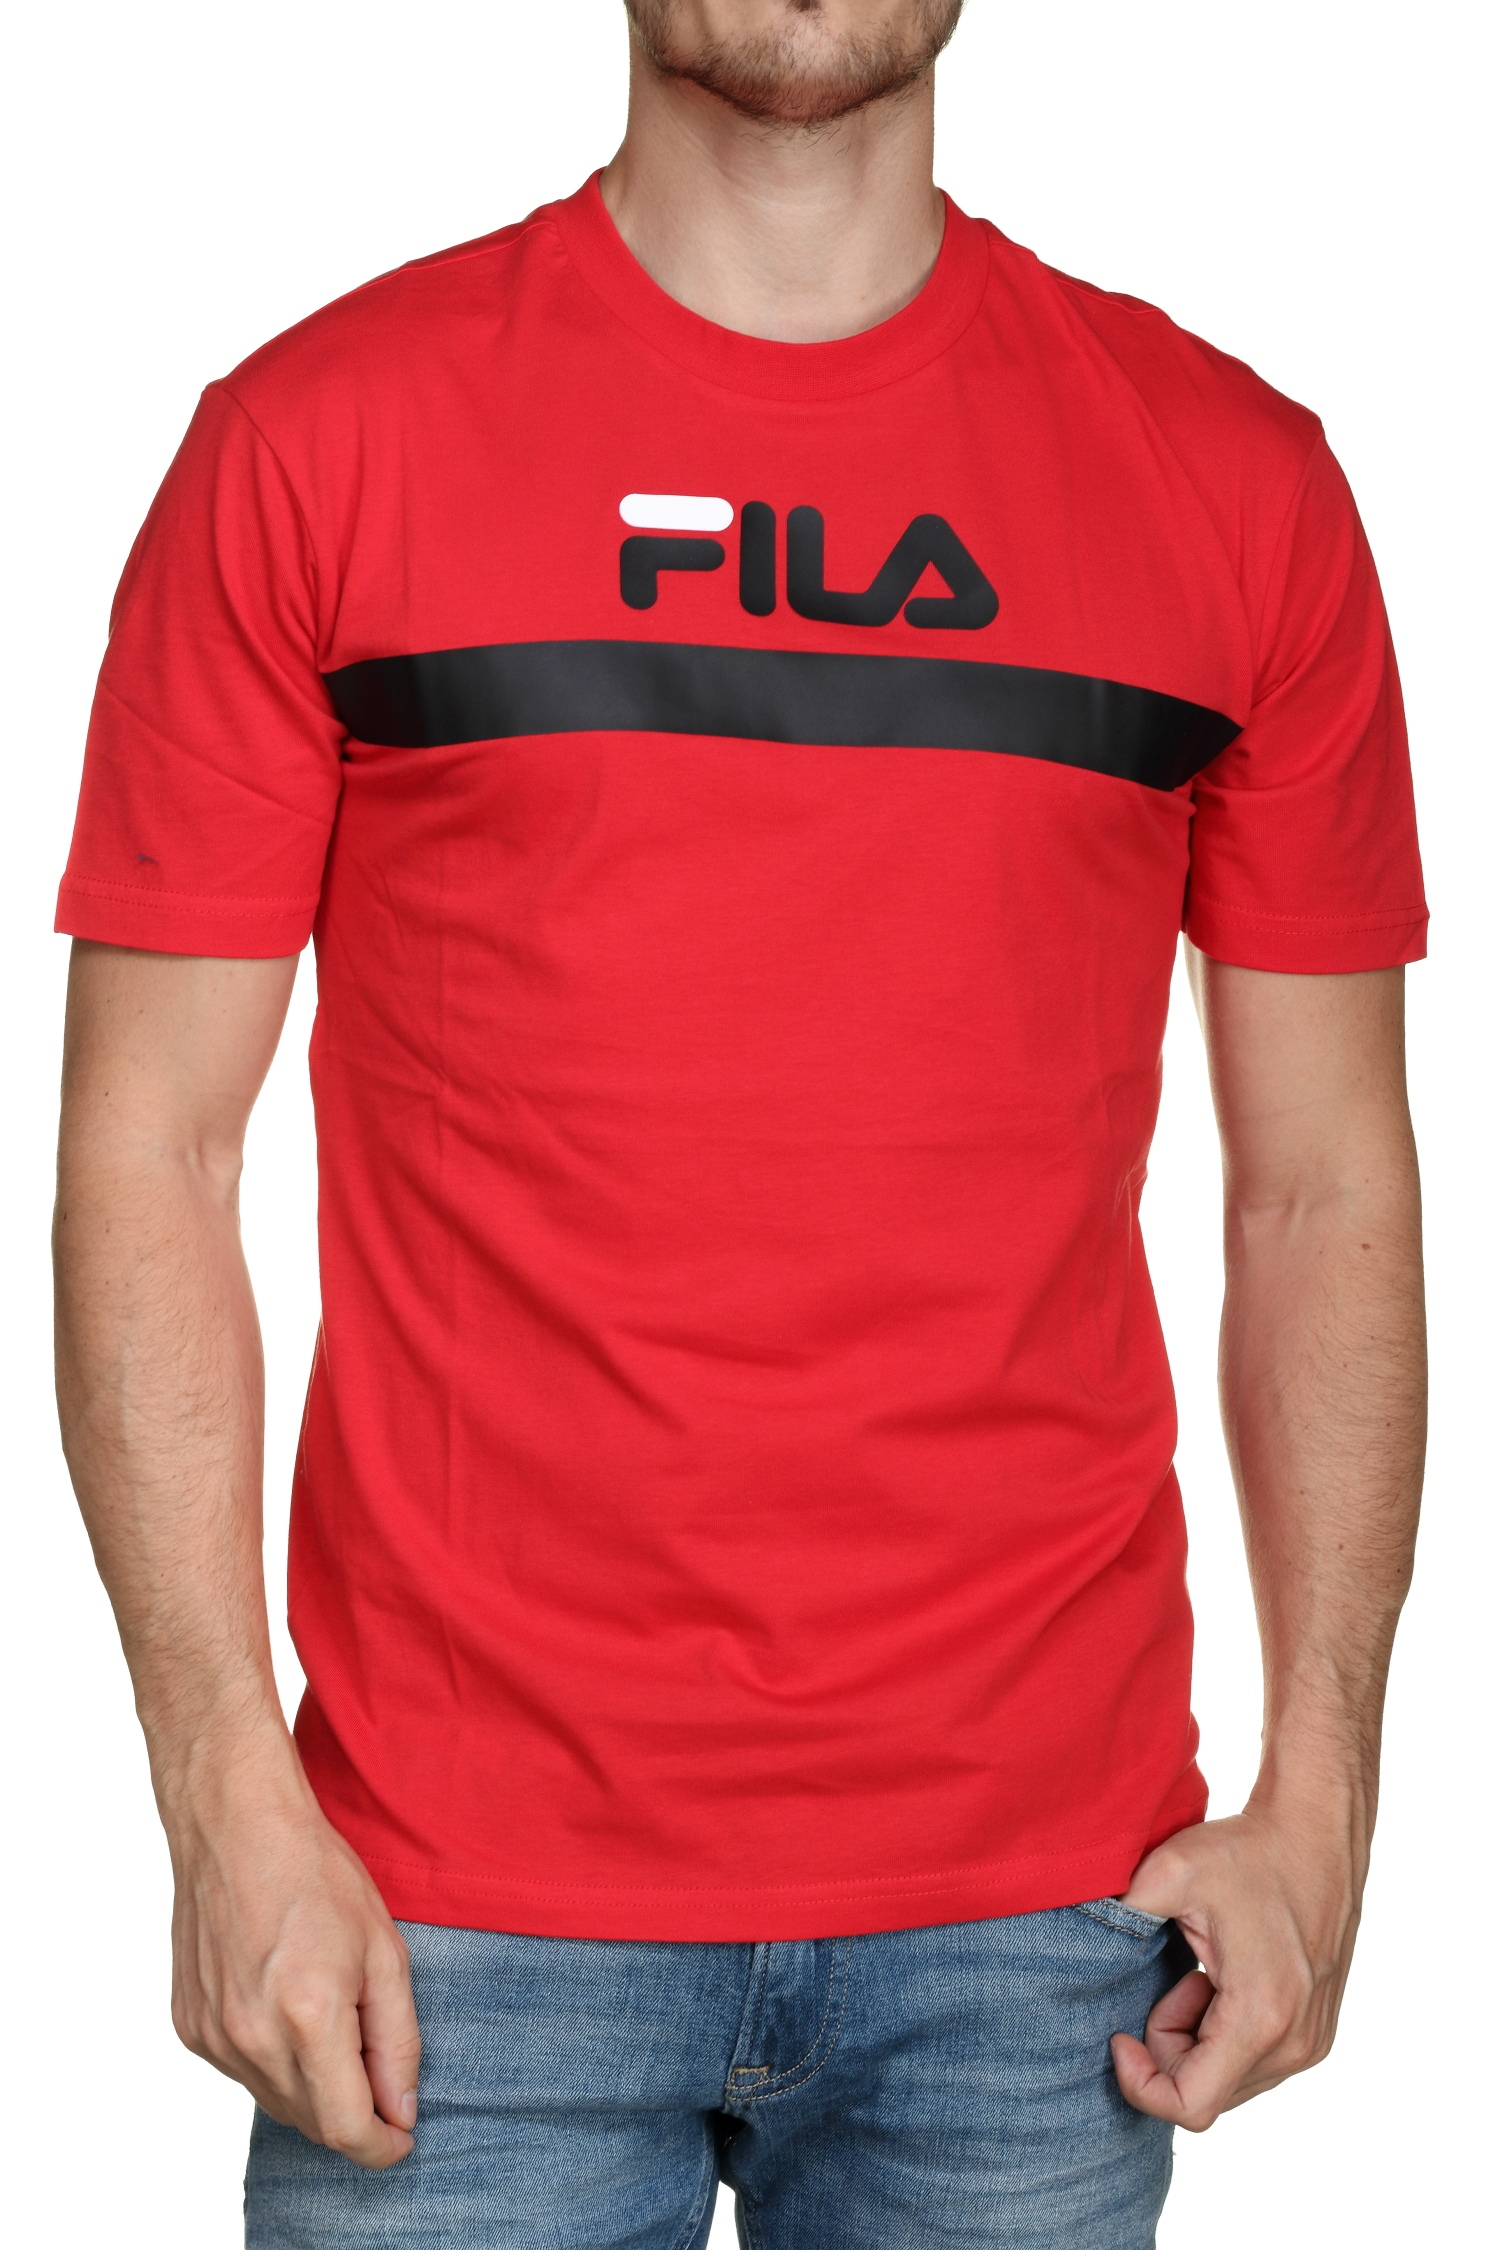 http://www.leadermode.com/179266/fila-687231-anatoli-006-true-red.jpg